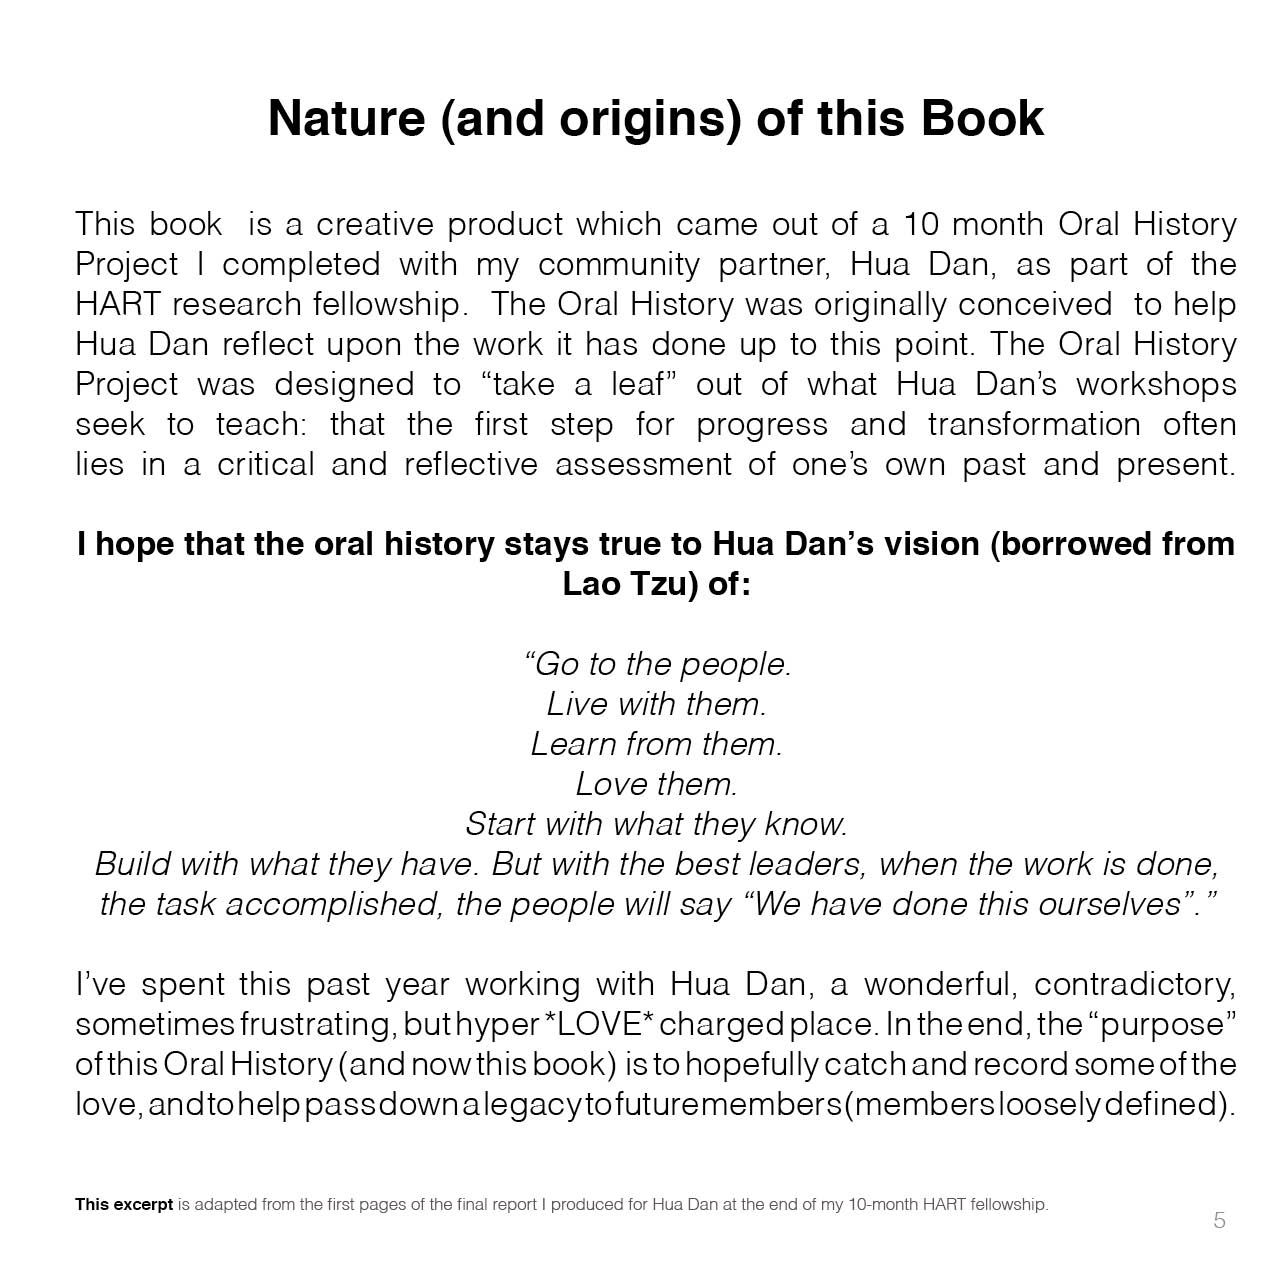 """Nature (and origins) of this Book   This book is a creative product which came out of a 10 month Oral History Project I completed with my community partner, Hua Dan, as part of the HART research fellowship. The Oral History was originally conceived to help Hua Dan reflect upon the work it has done up to this point. The Oral History Project was designed to """"take a leaf"""" out of what Hua Dan's workshops seek to teach: that the first step for progress and transformation often lies in a critical and reflective assessment of one's own past and present.  I hope that the oral history stays true to Hua Dan's vision (borrowed from Lao Tzu) of:  """"Go to the people. Live with them. Learn from them. Love them. Start with what they know. Build with what they have. But with the best leaders, when the work is done, the task accomplished, the people will say """"We have done this ourselves"""".""""  I've spent this past year working with Hua Dan, a wonderful, contradictory, sometimes frustrating, but hyper *LOVE* charged place. In the end, the """"purpose"""" of this Oral History (and now this book) is to hopefully catch and record some of the love, and to help pass down a legacy to future members (members loosely defined)."""